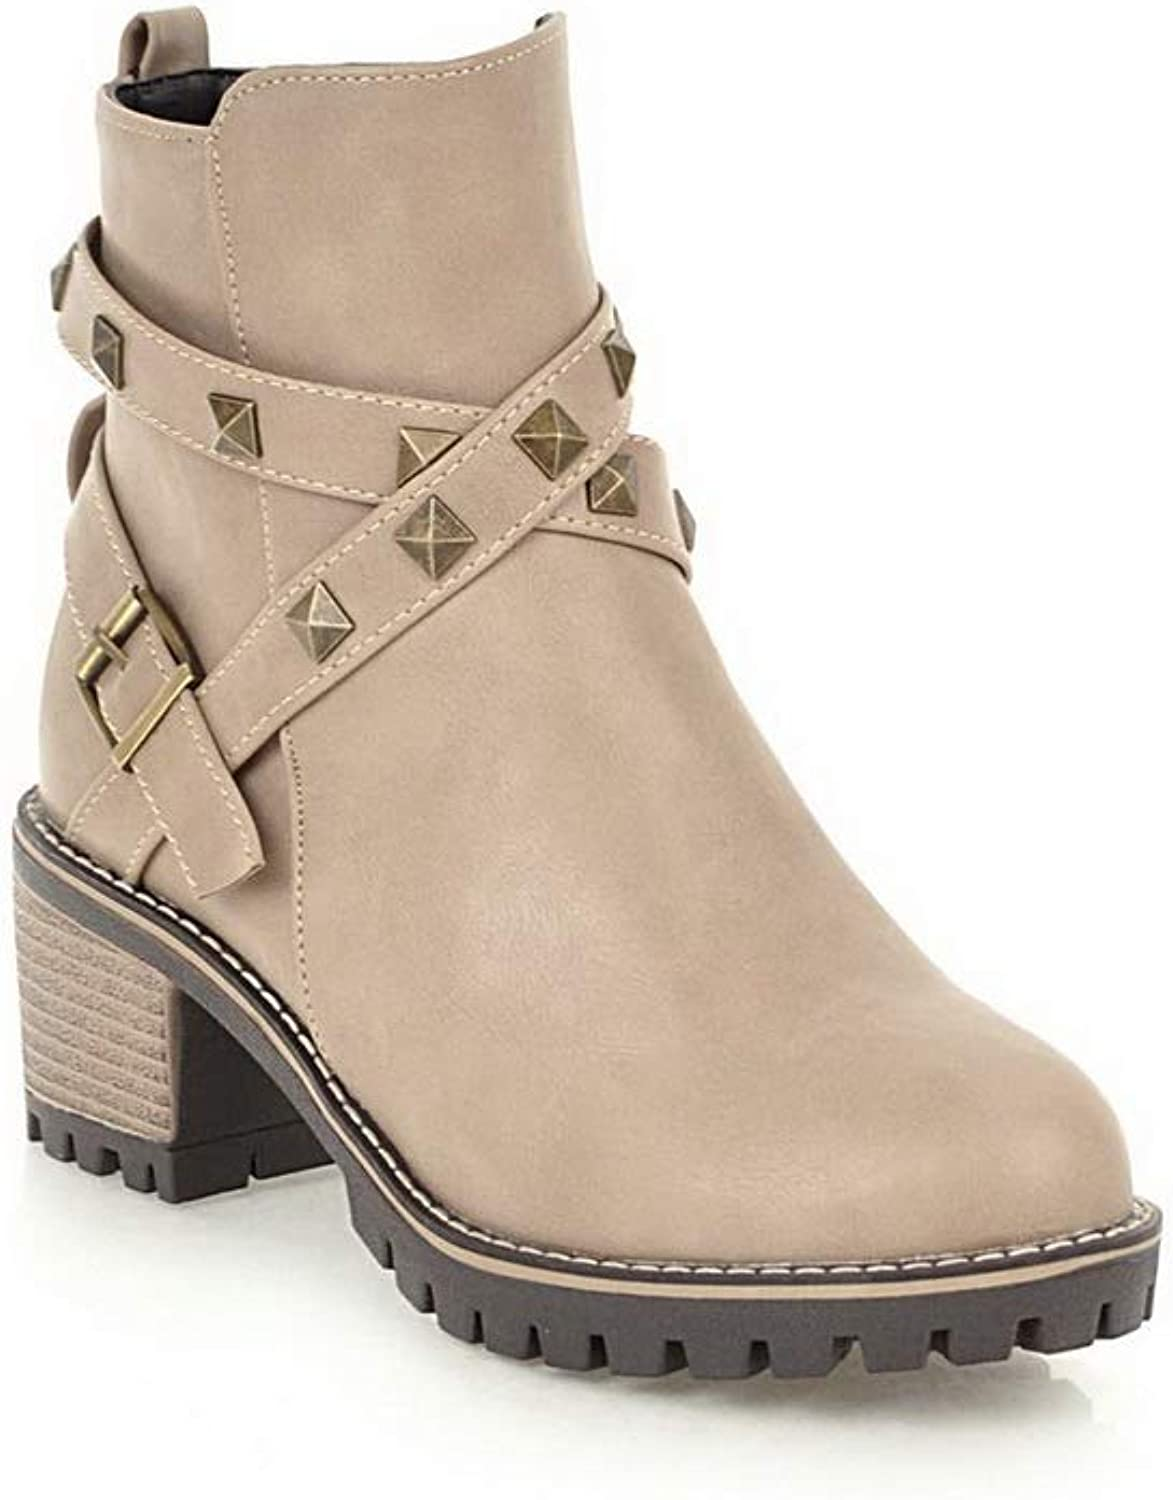 AdeeSu Womens Studded Light-Weight Bucket-Style Leather Boots SXC03009